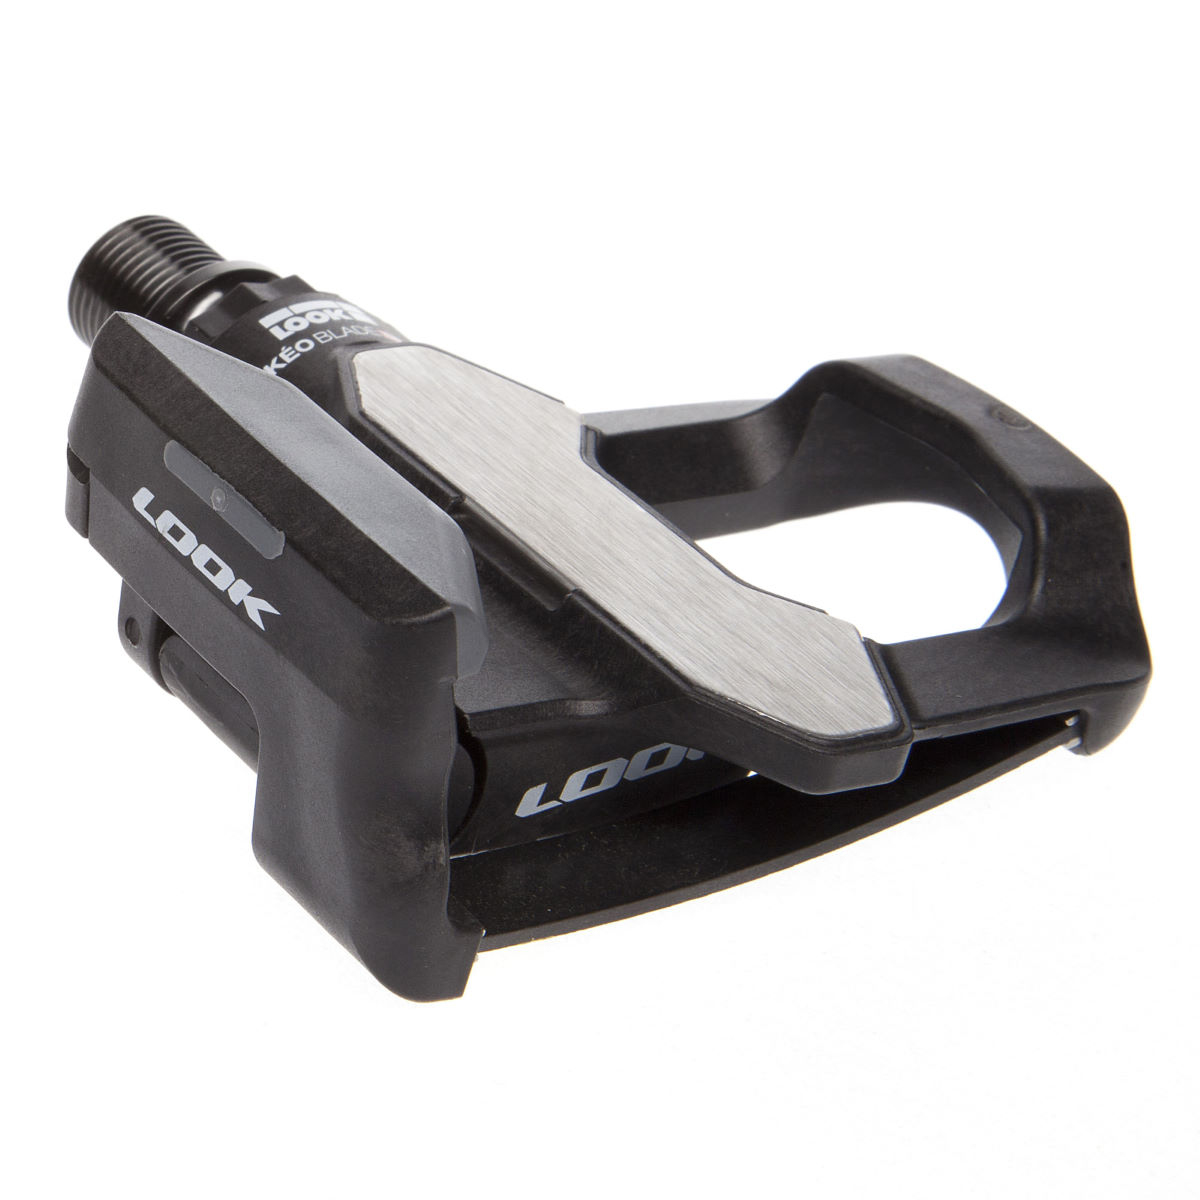 Look Keo Blade Carbon Ti Pedals